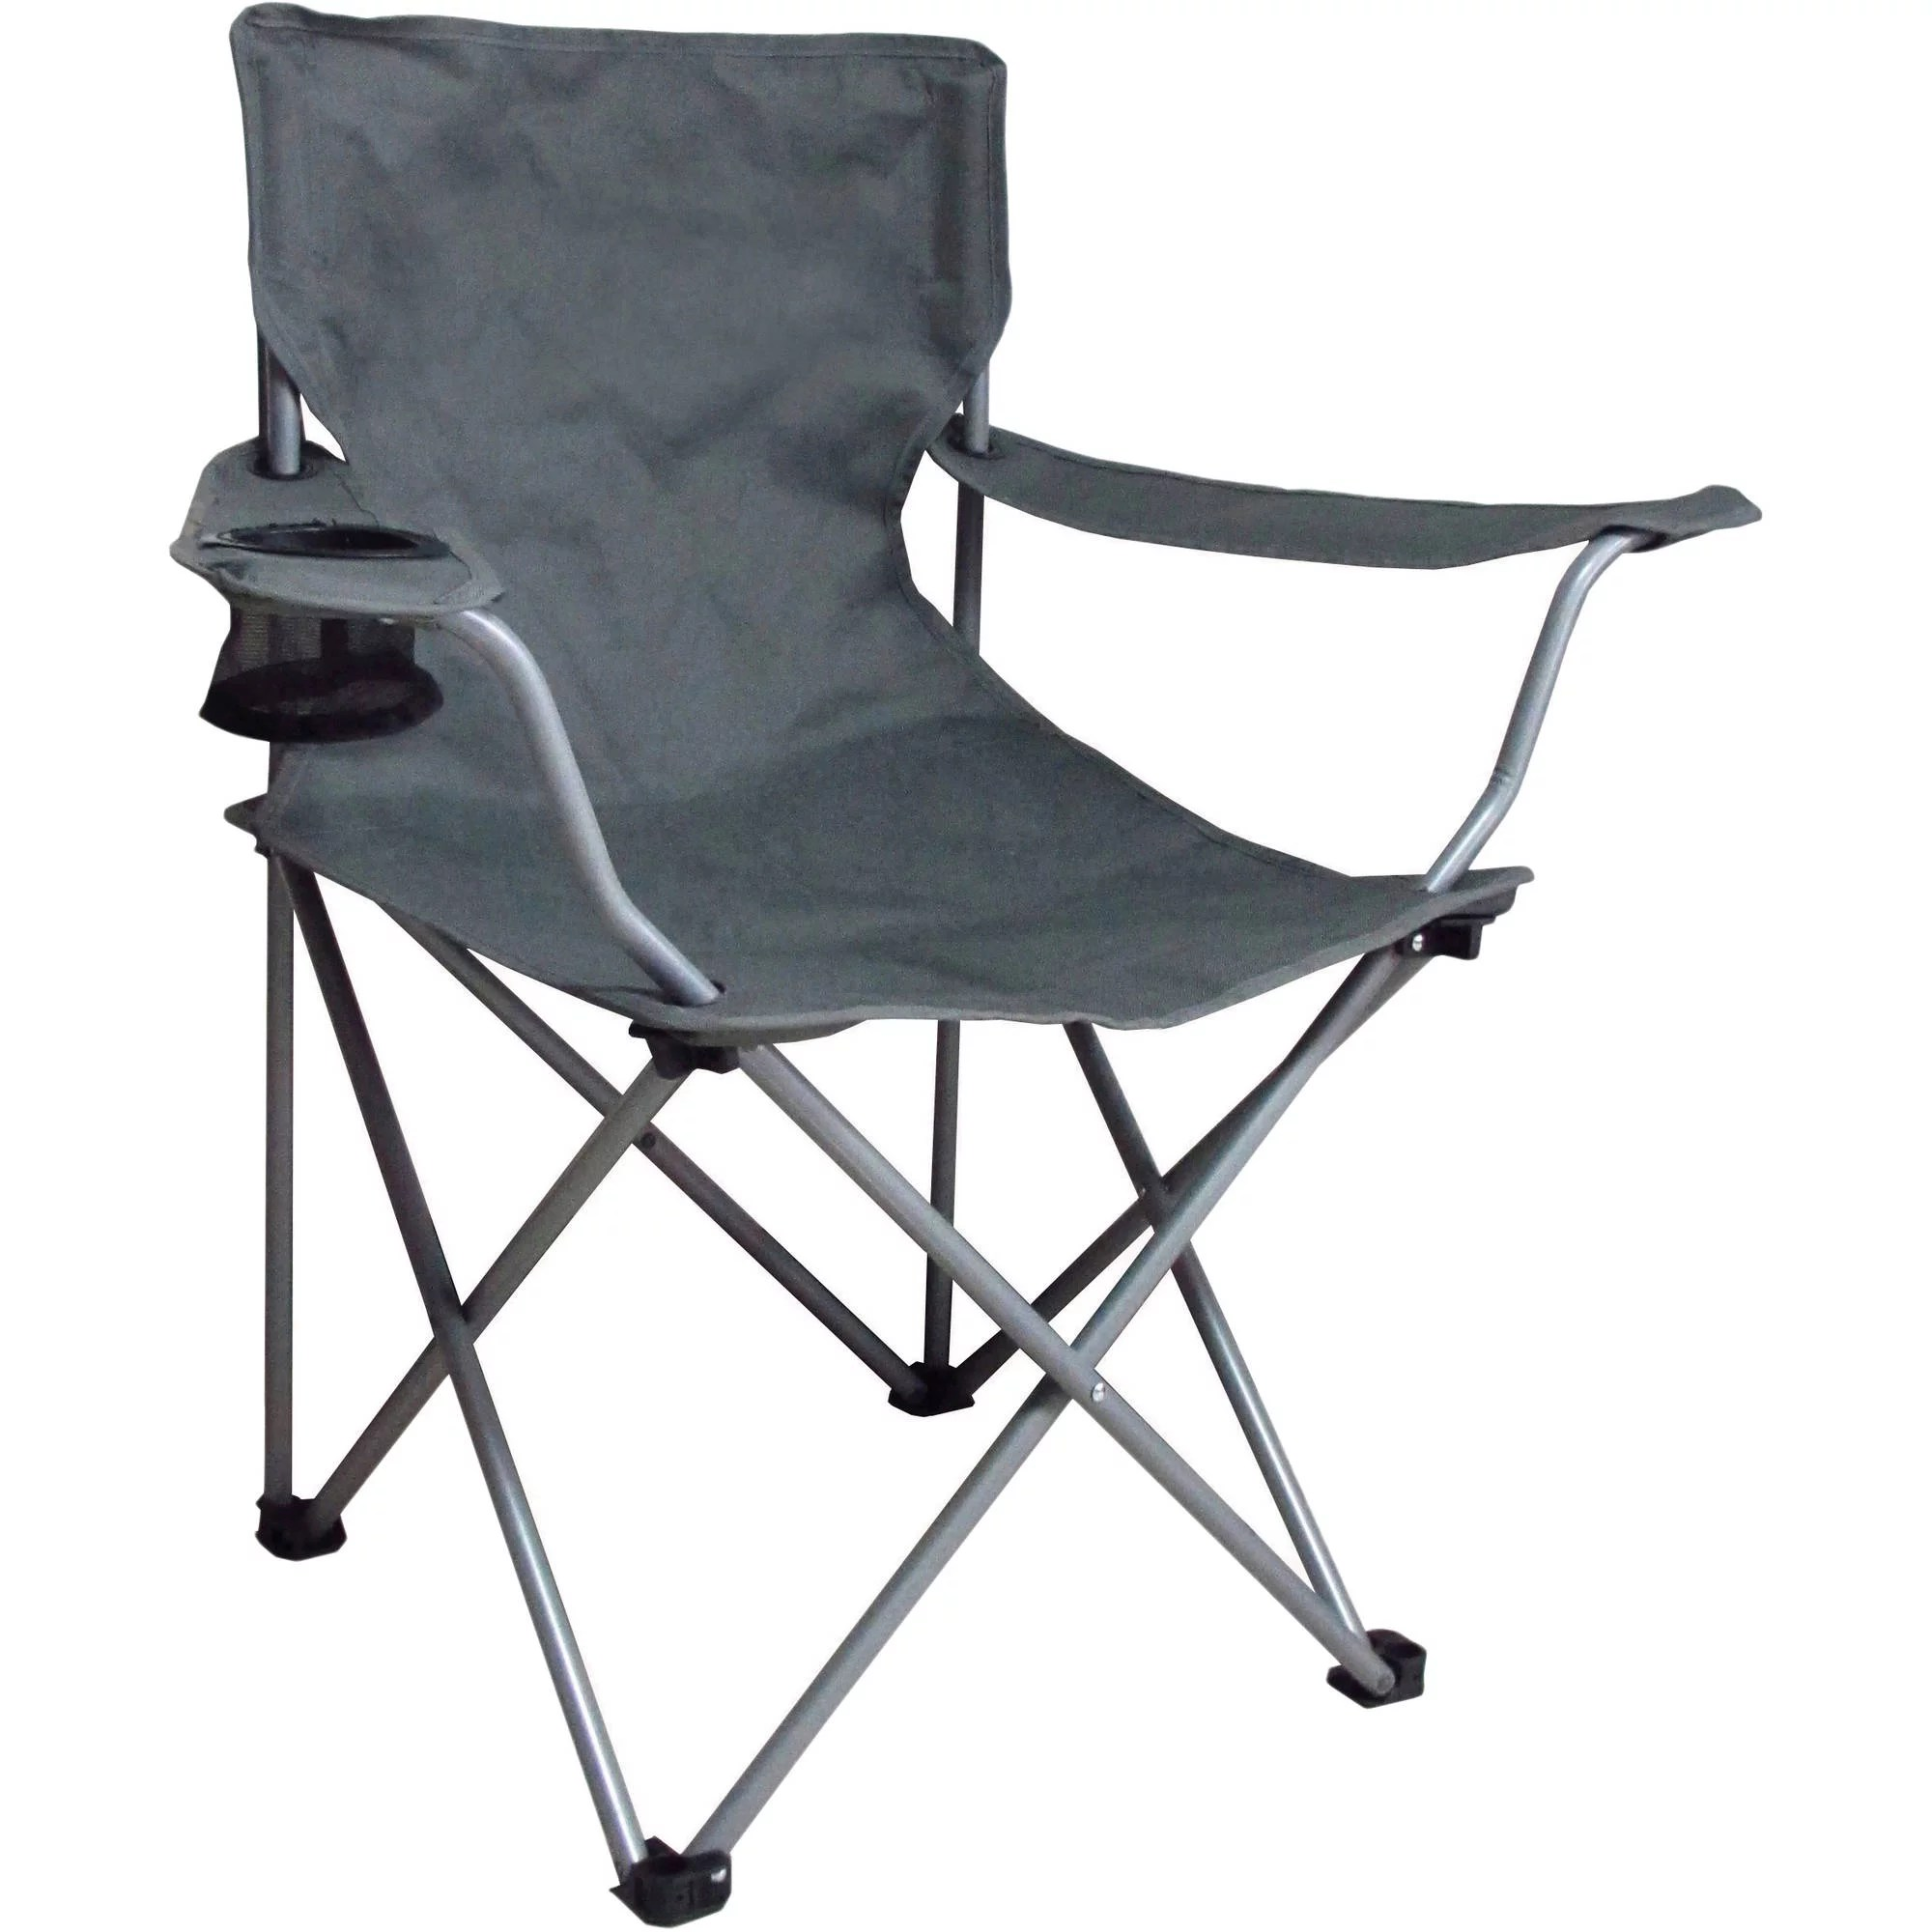 Foldable Lawn Chairs Ozark Trail Folding Chair